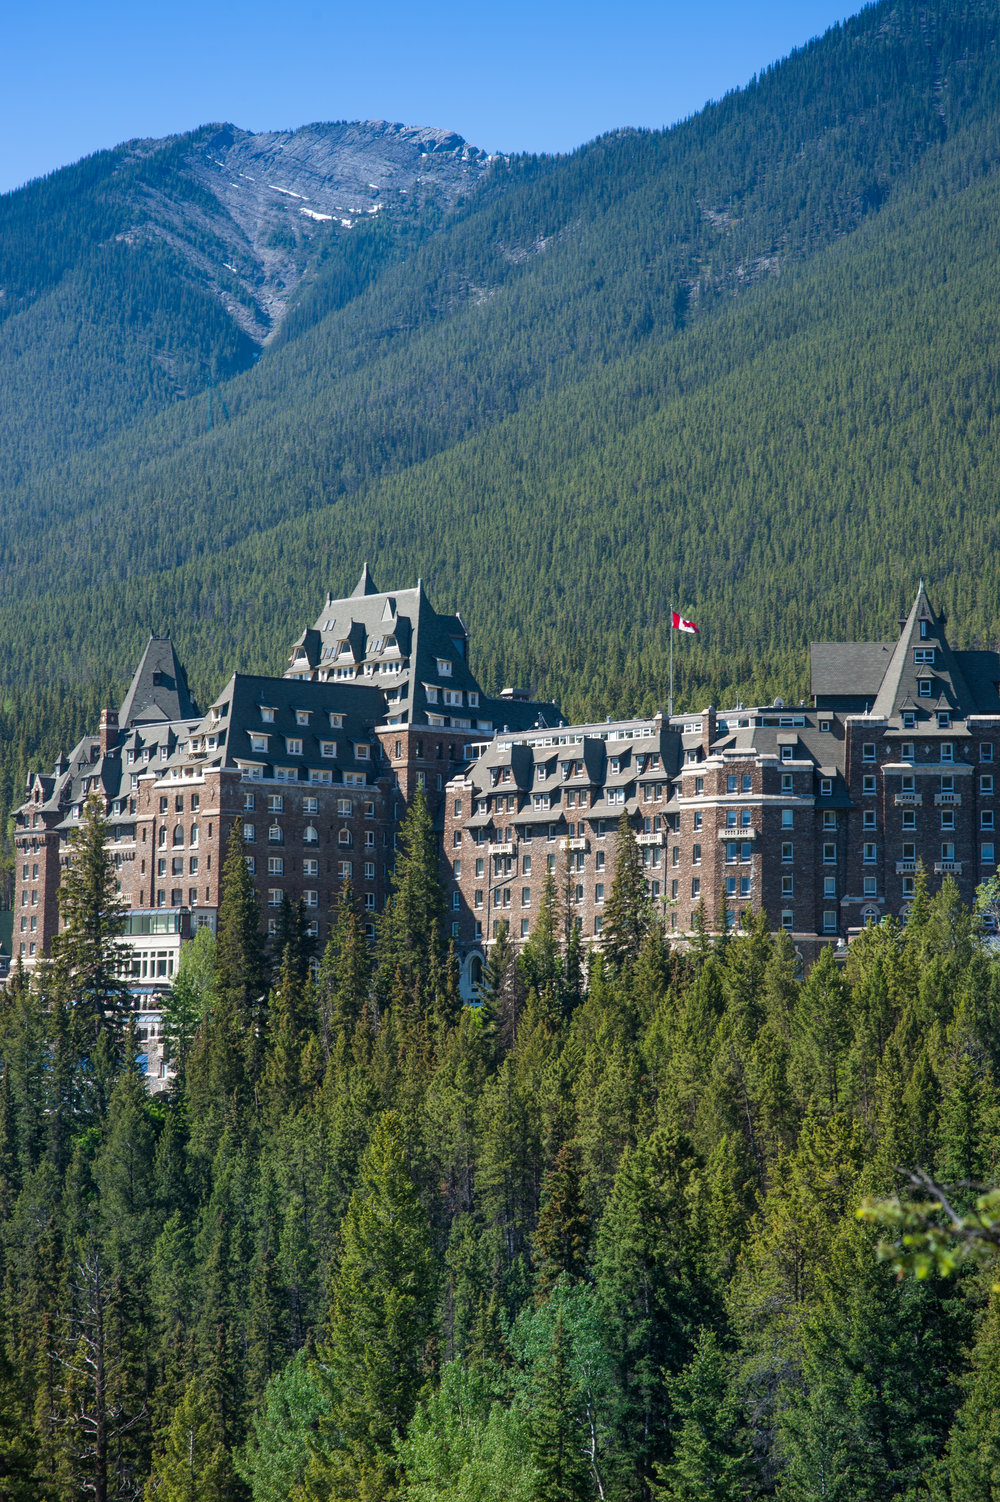 The Fairmont Banff as seen from above.Photo by Cameron Kelly Studios.